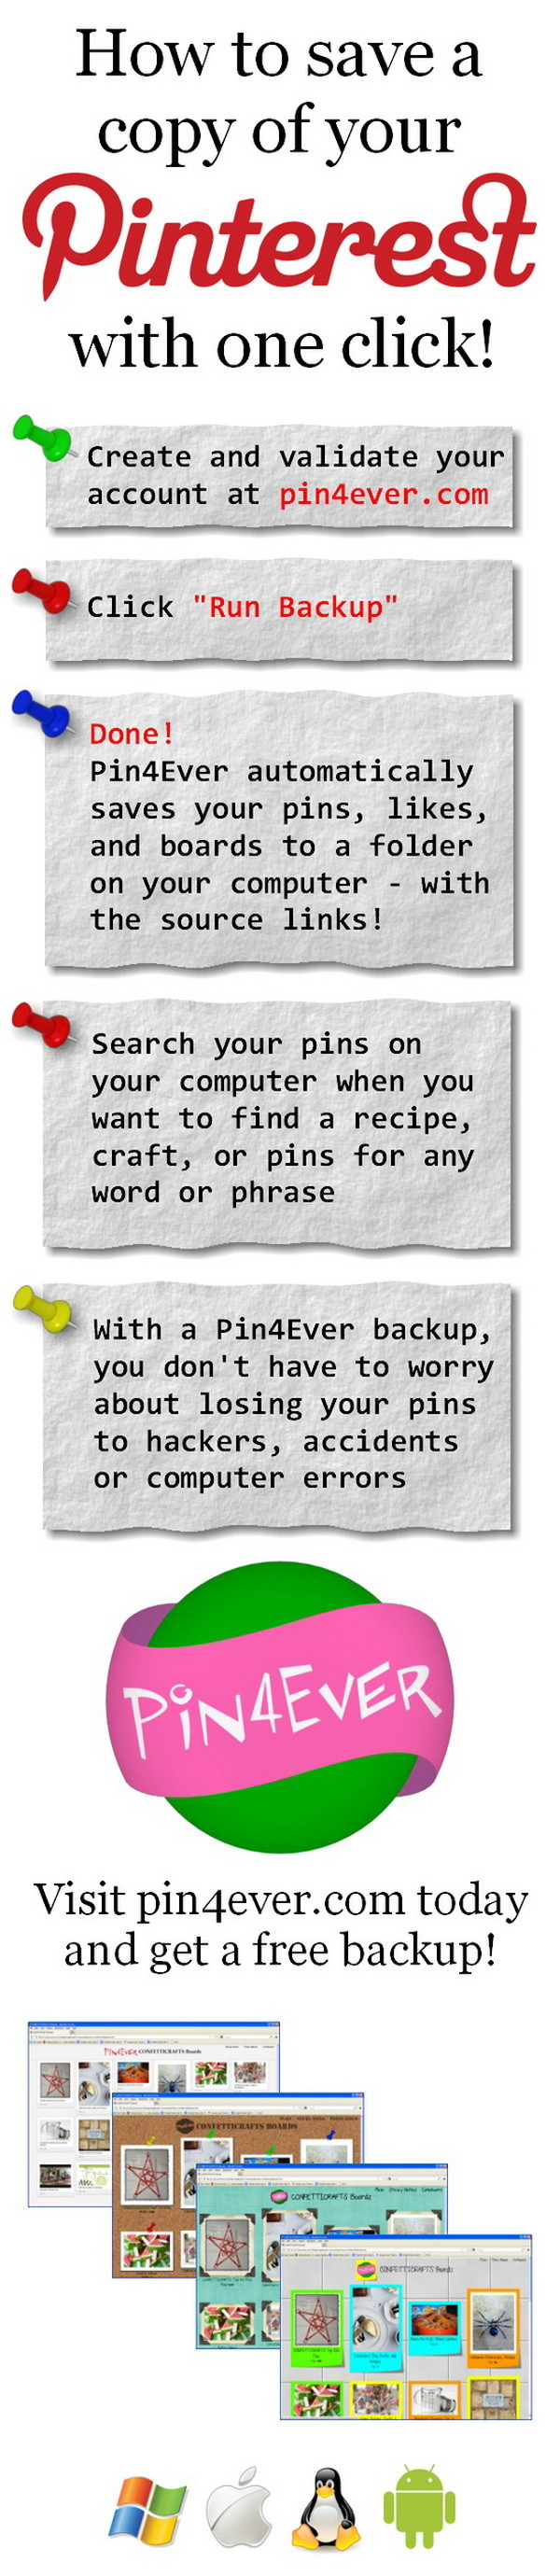 How to save all of your pins on pinterest removeandreplace how to save a copy of your pinterest with one click nvjuhfo Images